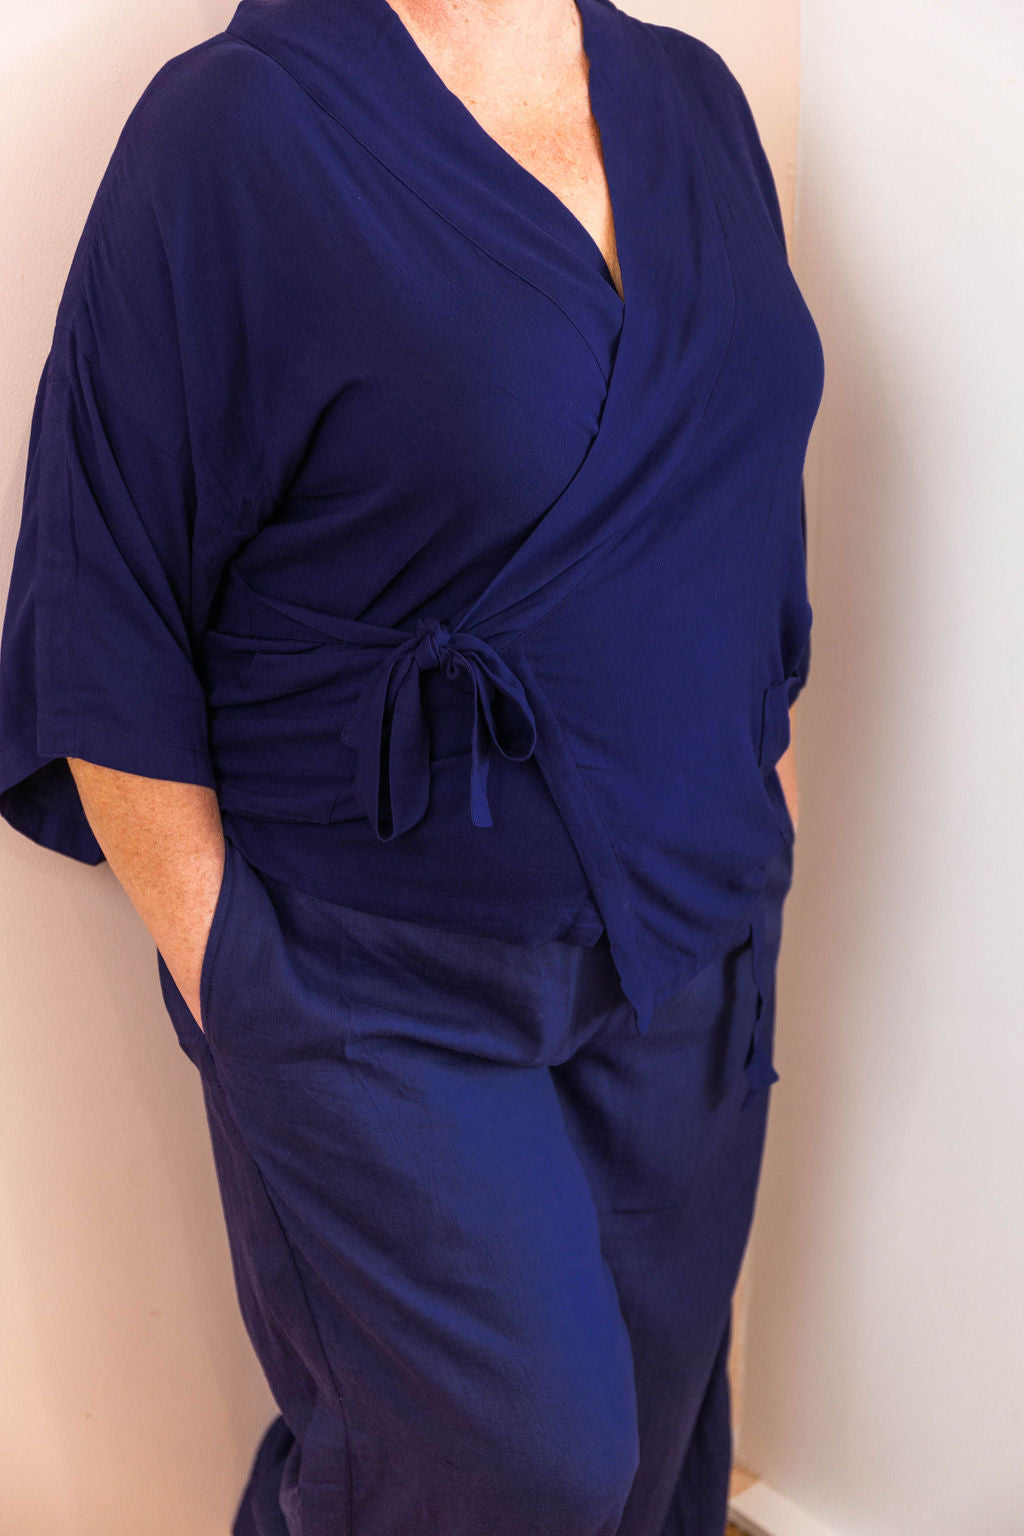 detail shot of woman wearing all navy limonata adaptive wrap top and linen pants